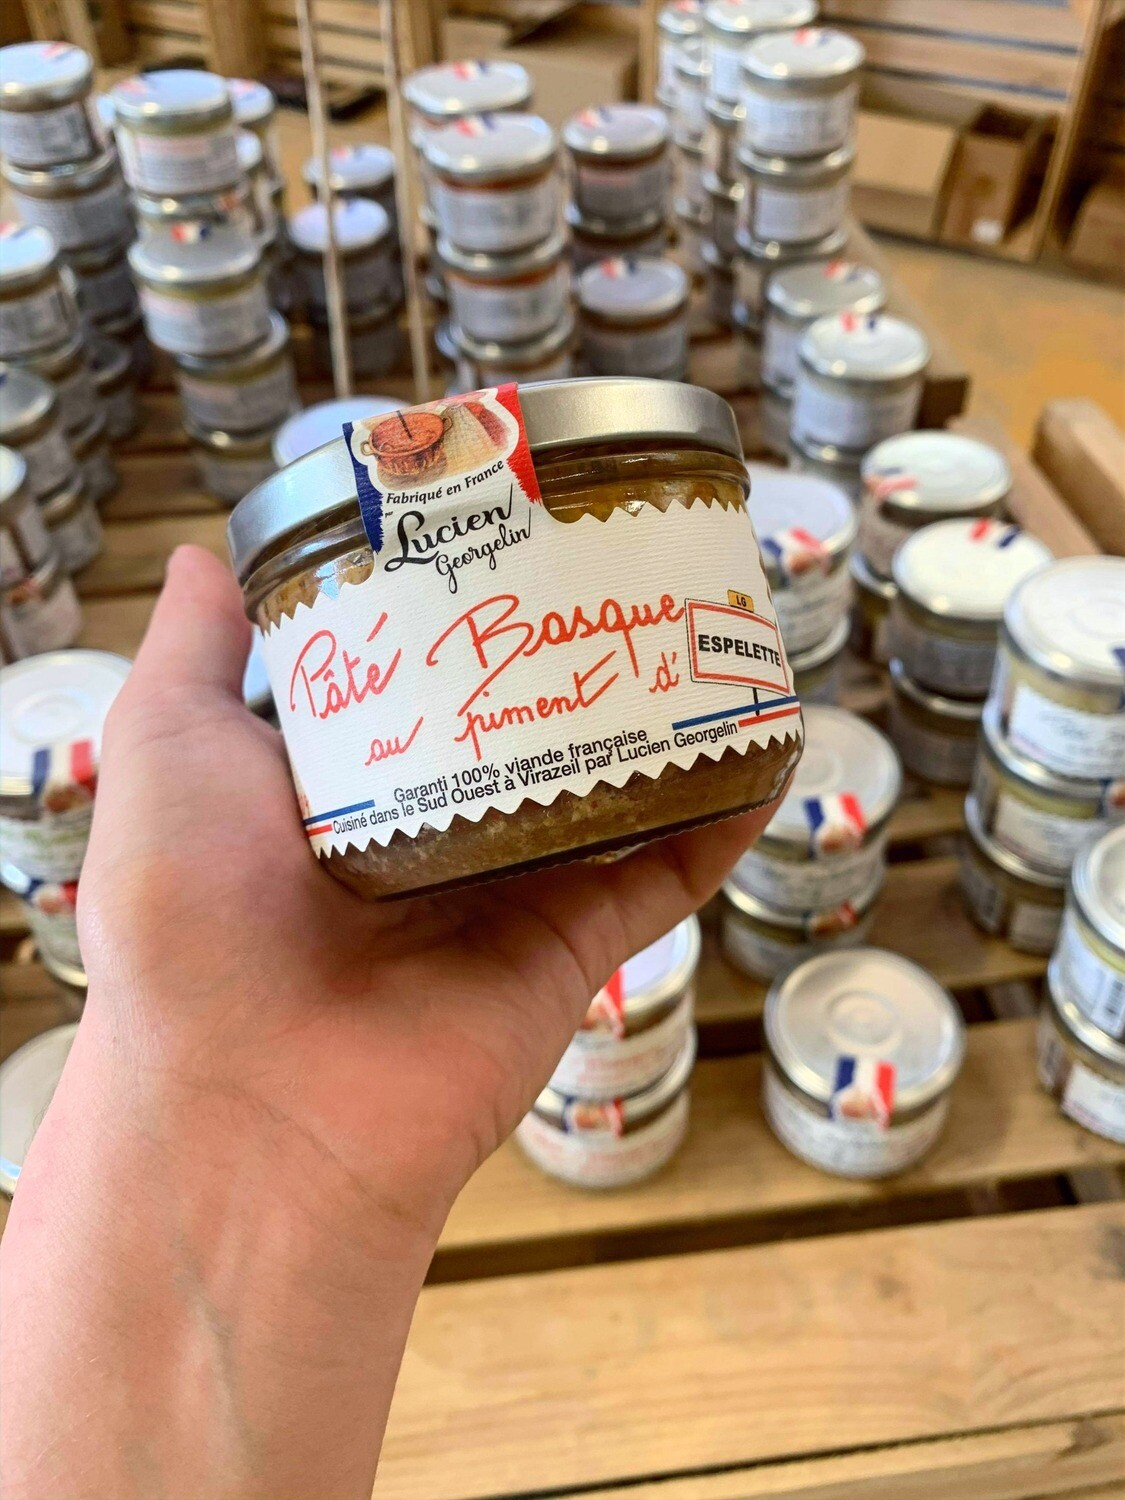 Pâté basque au piment d'Espelette